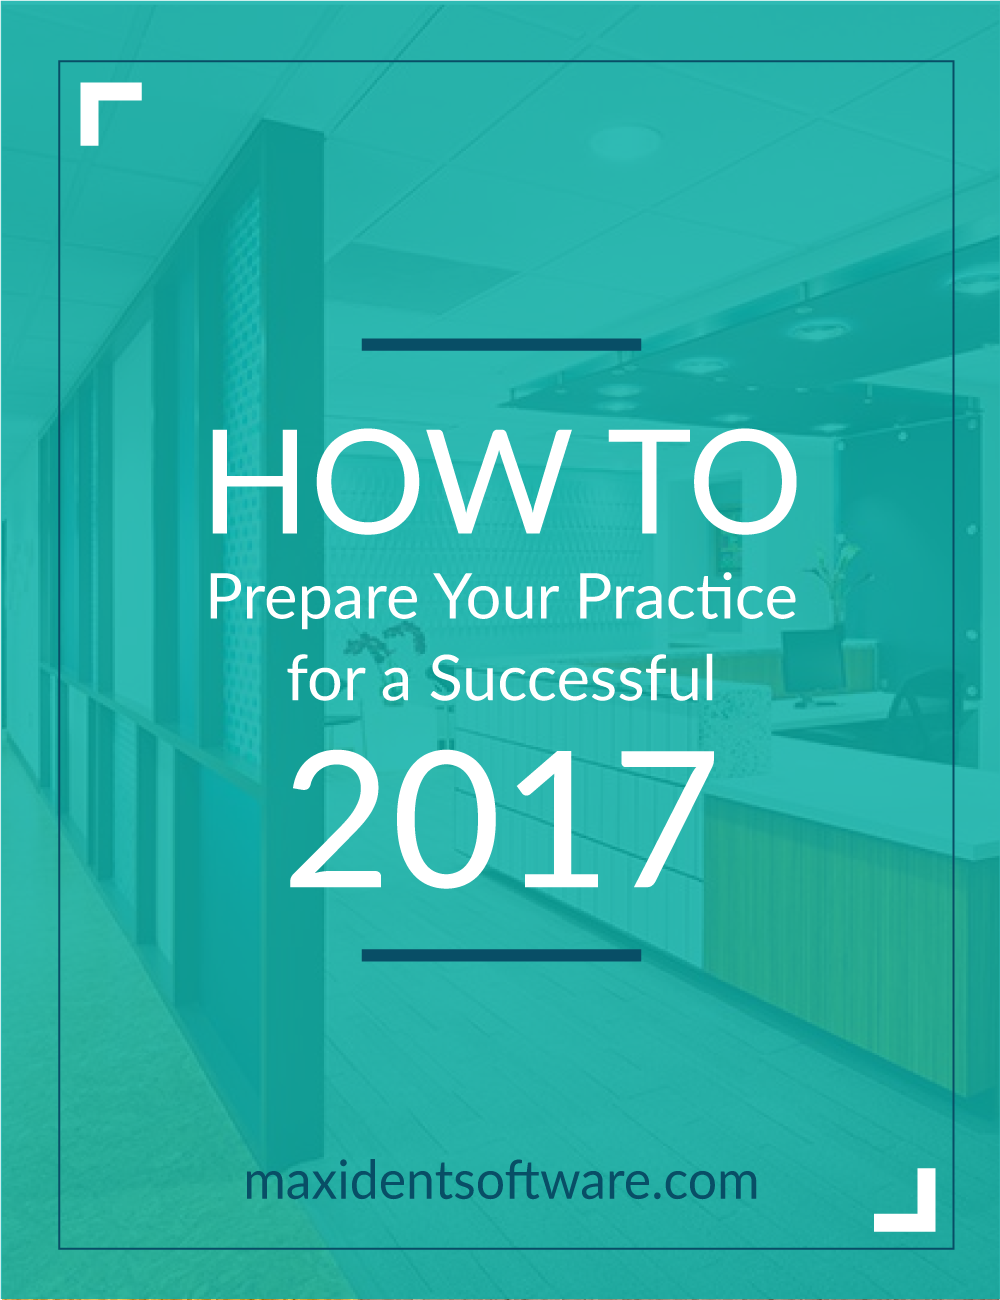 How to Prepare Your Practice for a Successful 2017